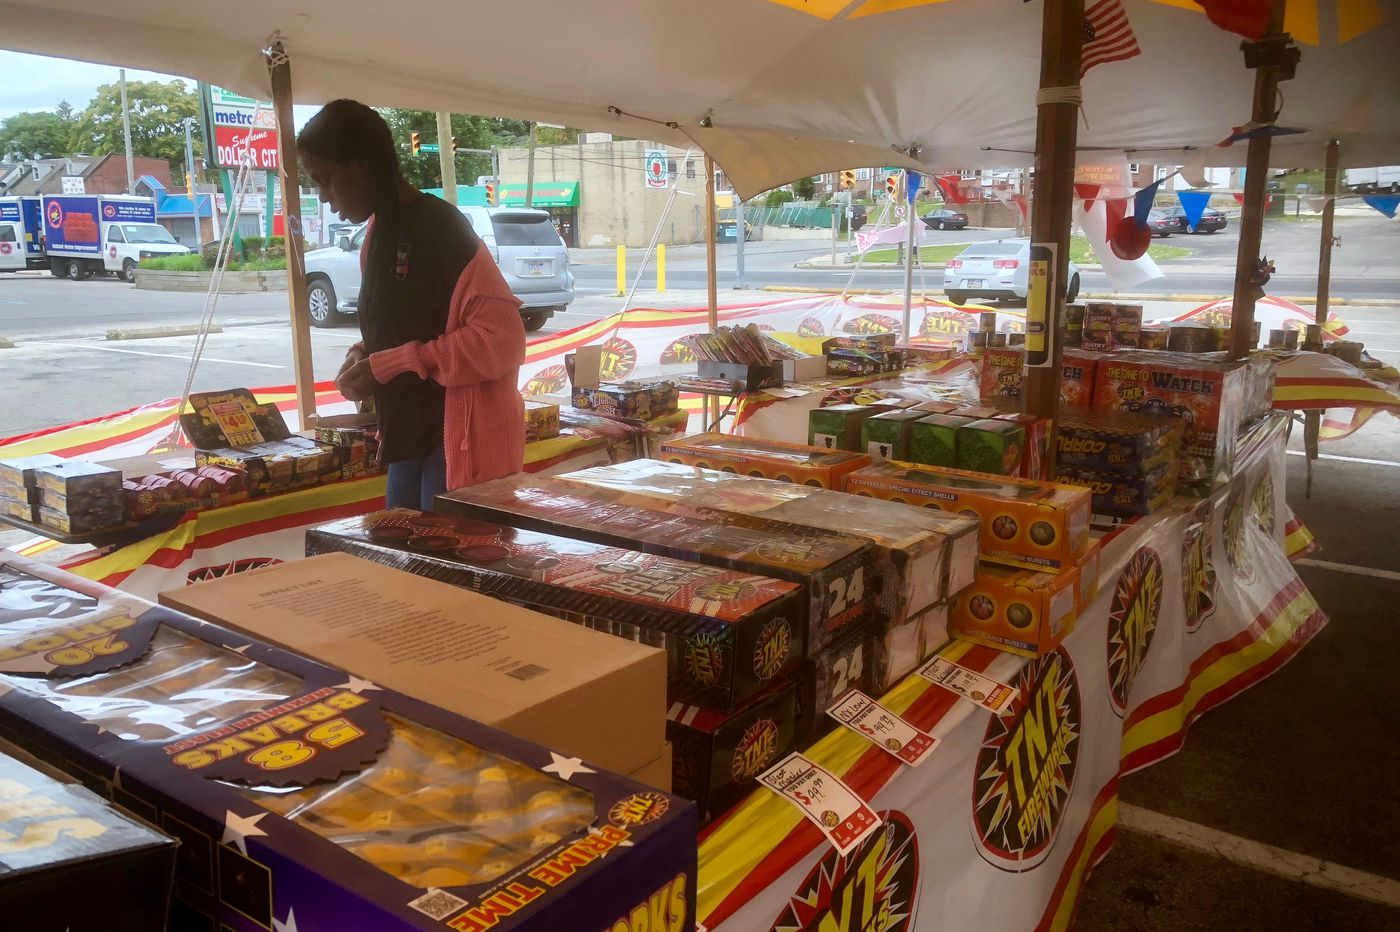 Looking to buy fireworks this July 4th in Pa.? Popular tent sales have been sidelined.